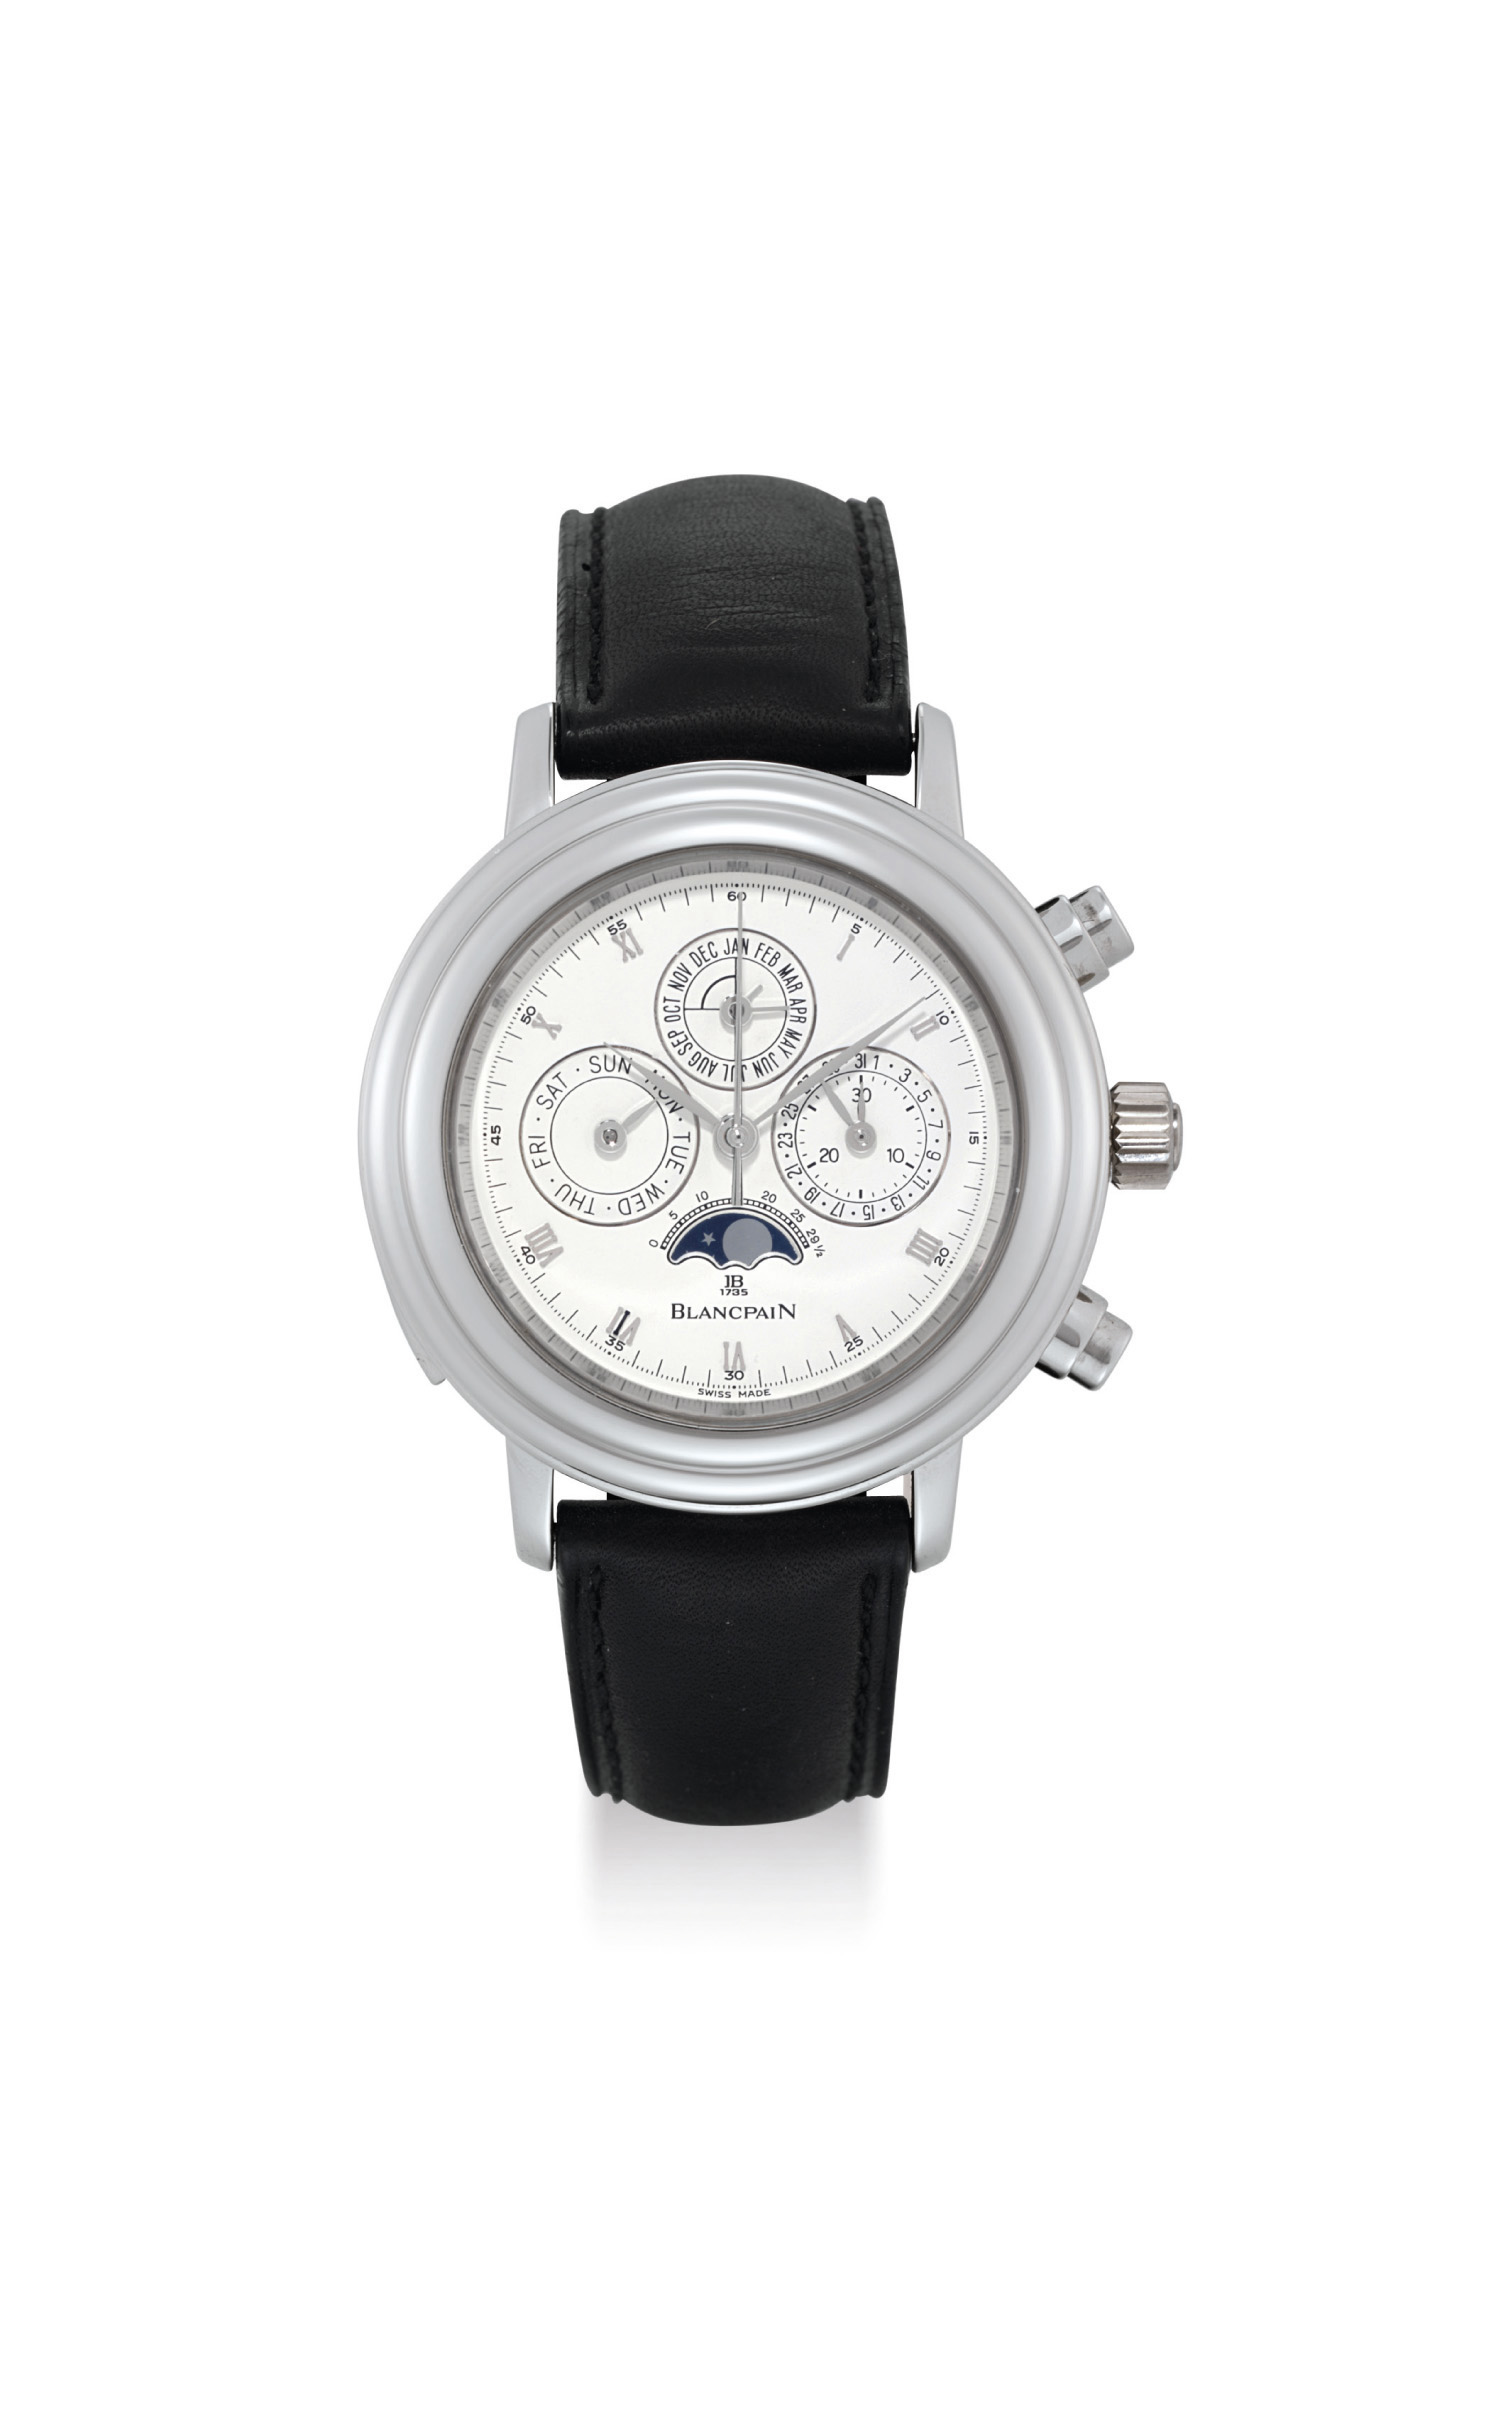 BLANCPAIN. AN EXTREMELY RARE AND IMPORTANT PLATINUM LIMITED EDITION AUTOMATIC MINUTE REPEATING PERPETUAL CALENDAR SPLIT SECONDS CHRONOGRAPH WRISTWATCH WITH TOURBILLON, MOON PHASES AND LEAP YEAR INDICATION